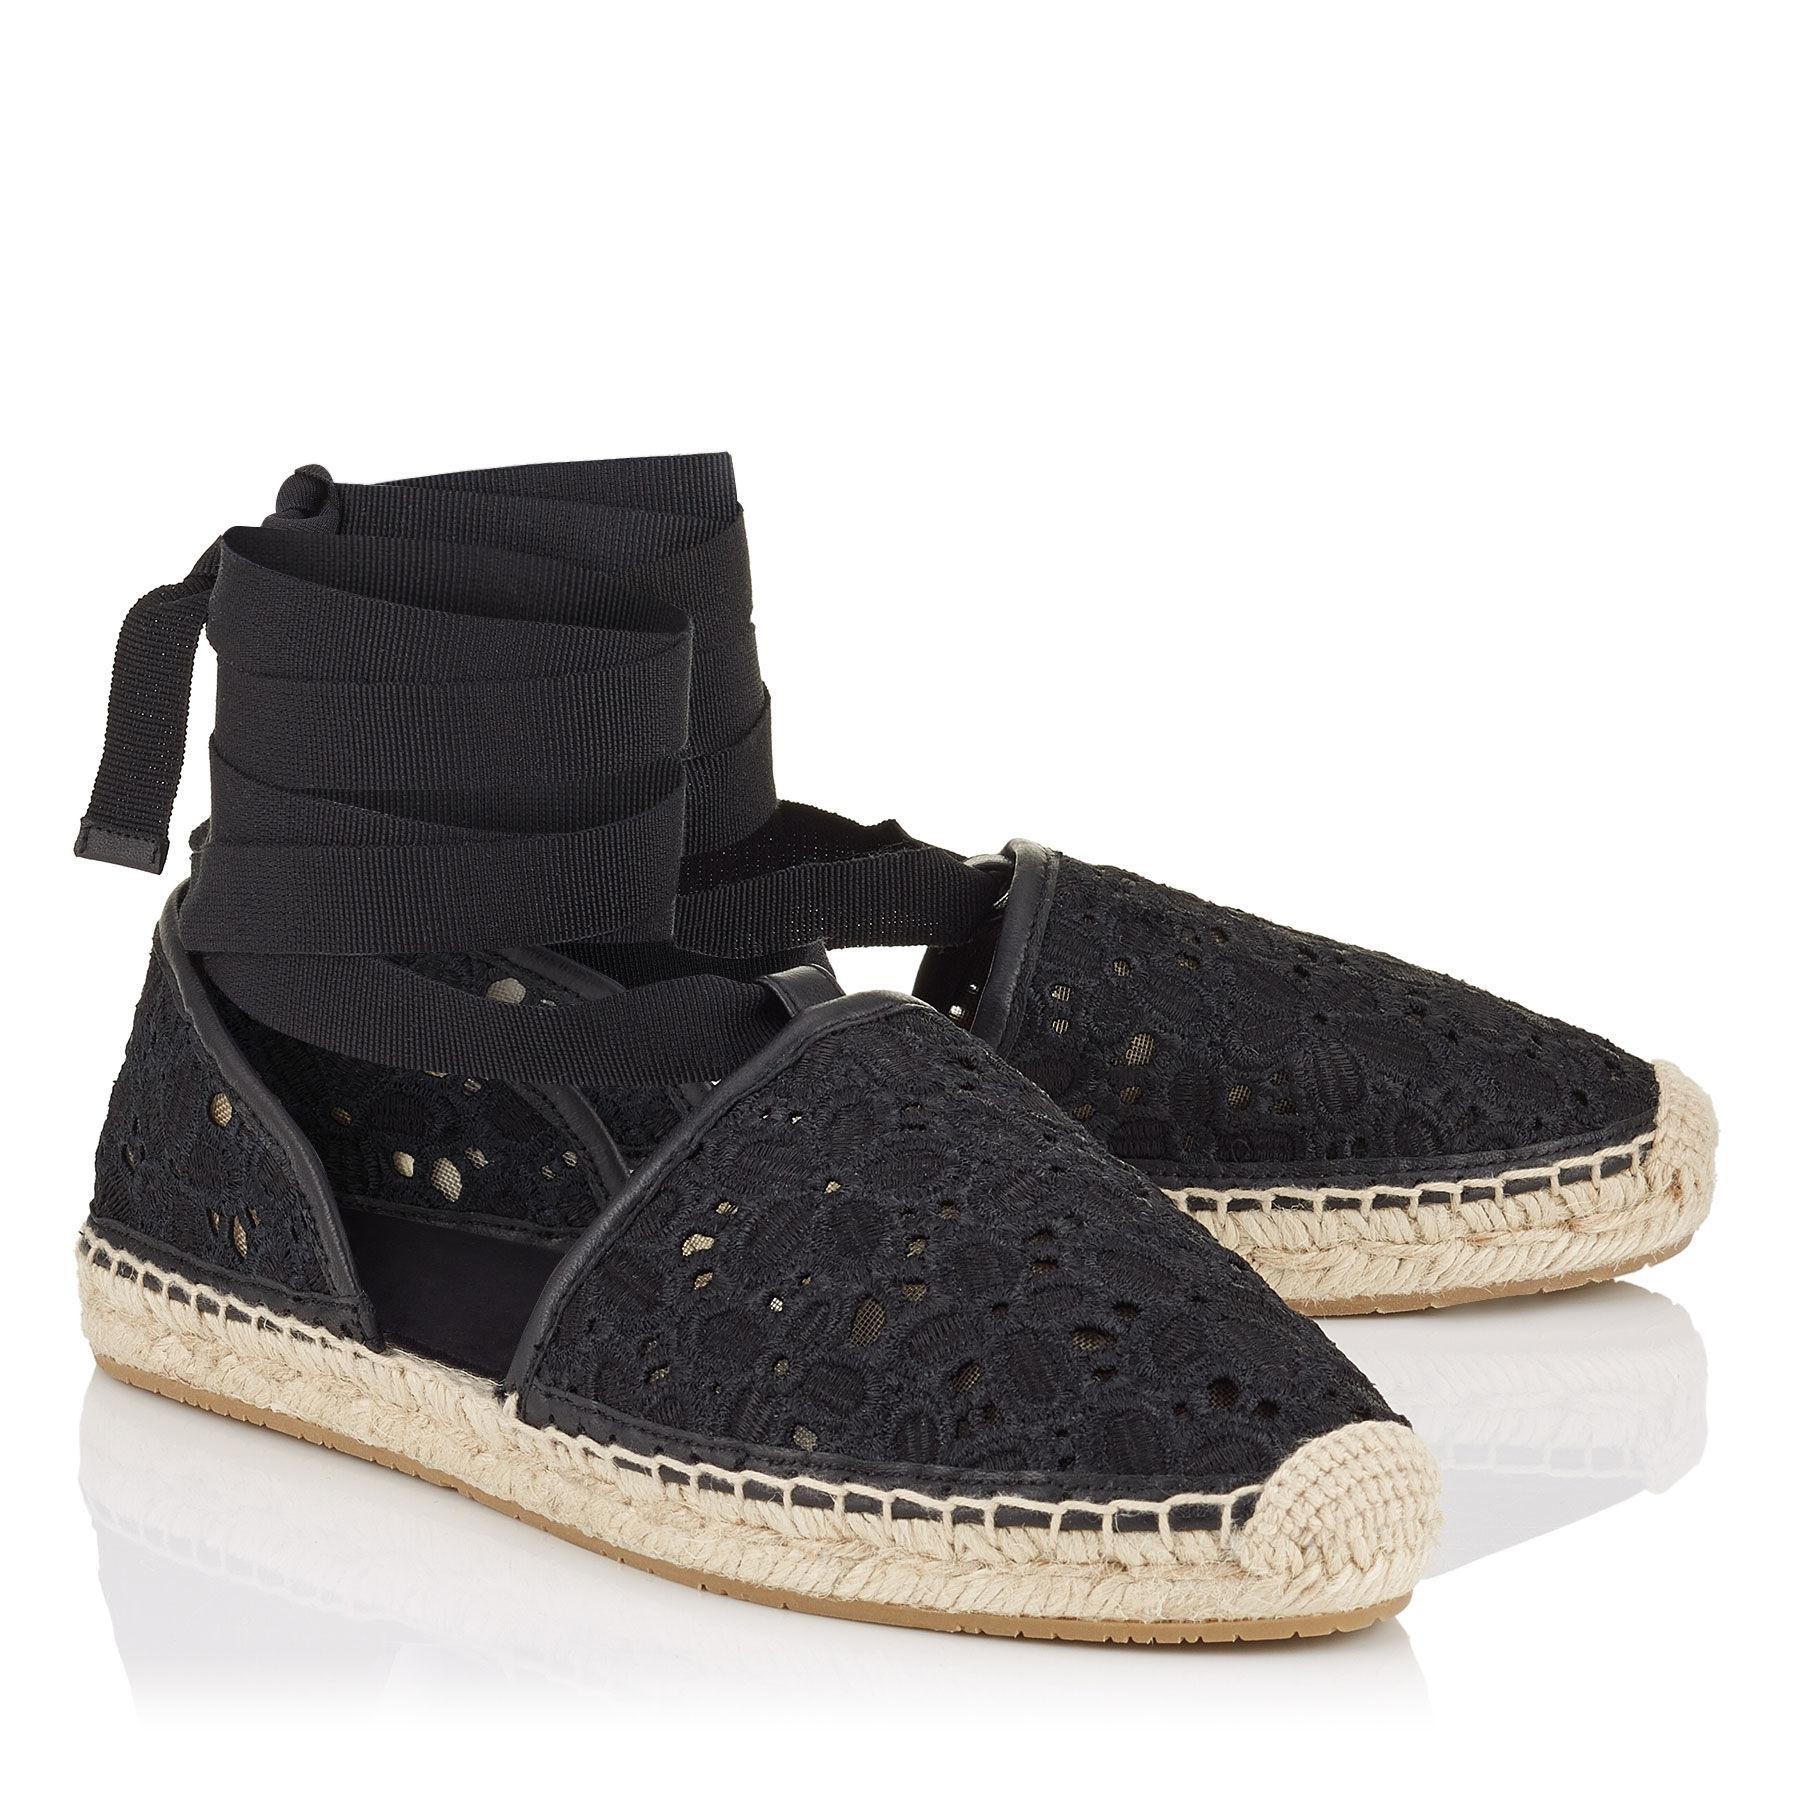 jimmy choo factory outlet online nmvi  Jimmy Choo Dolphin Lace Embroidered Espadrille Tie black Flats